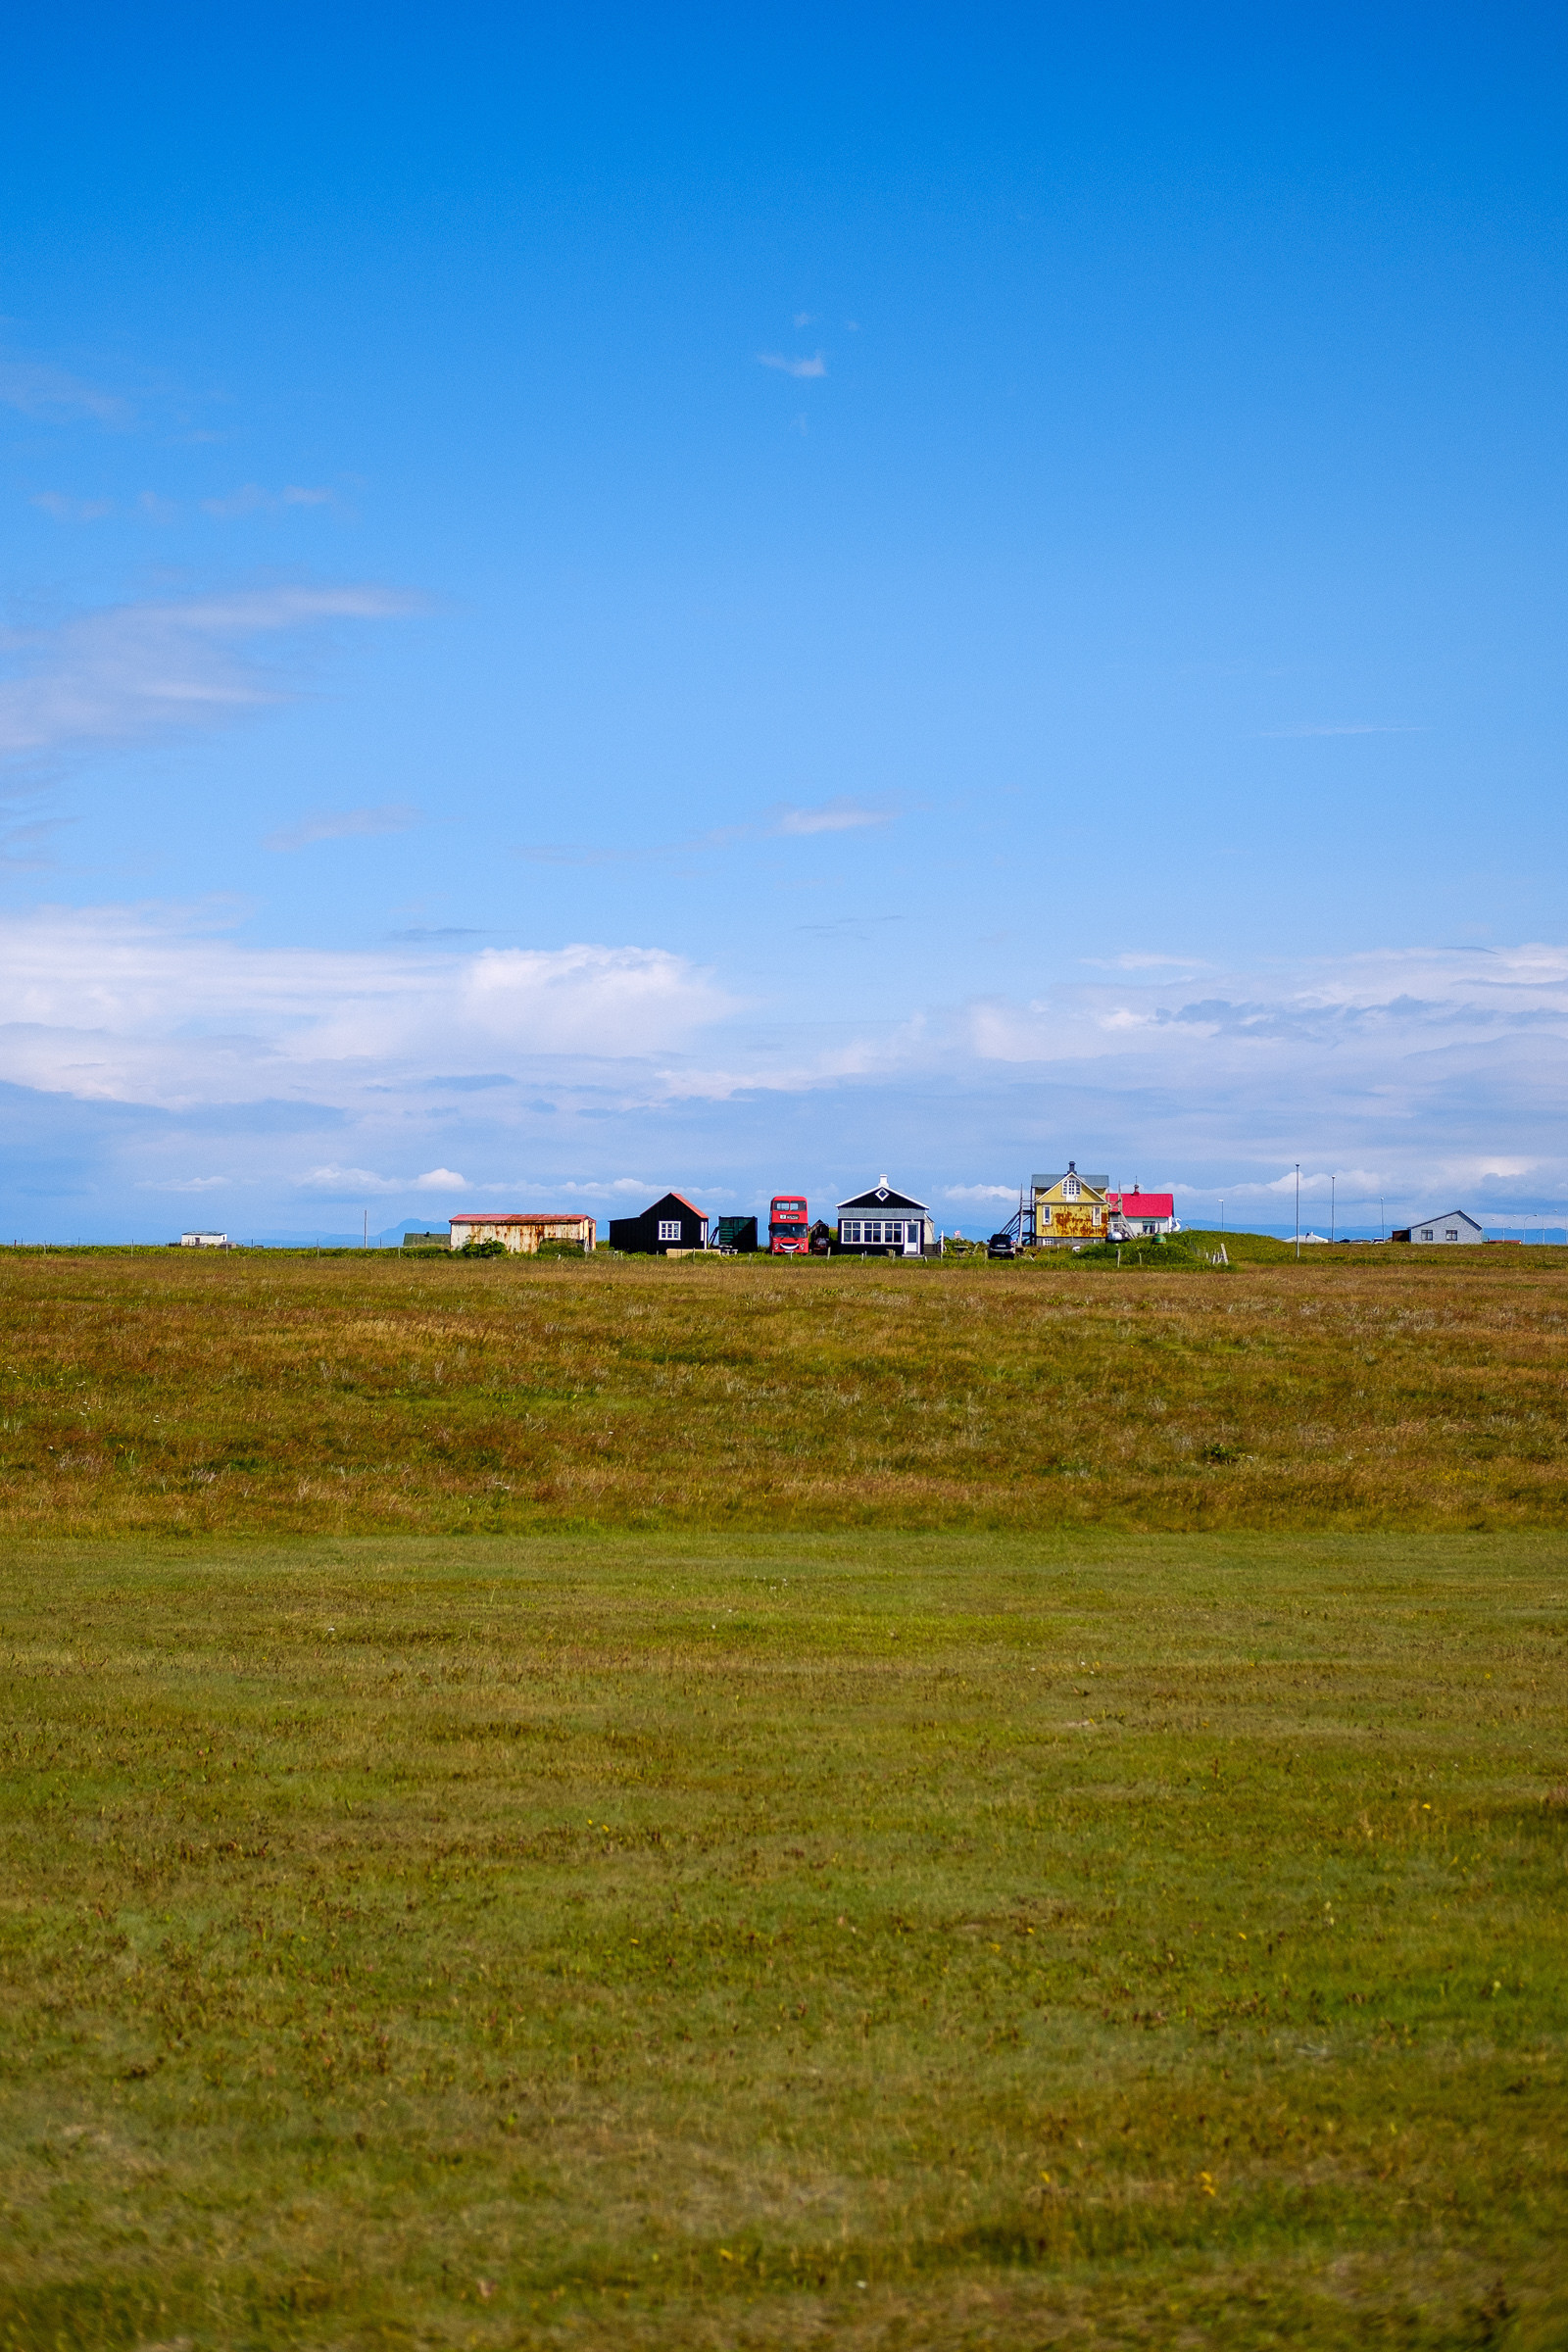 A double-decker tour bus parked by an old Icelandic farm